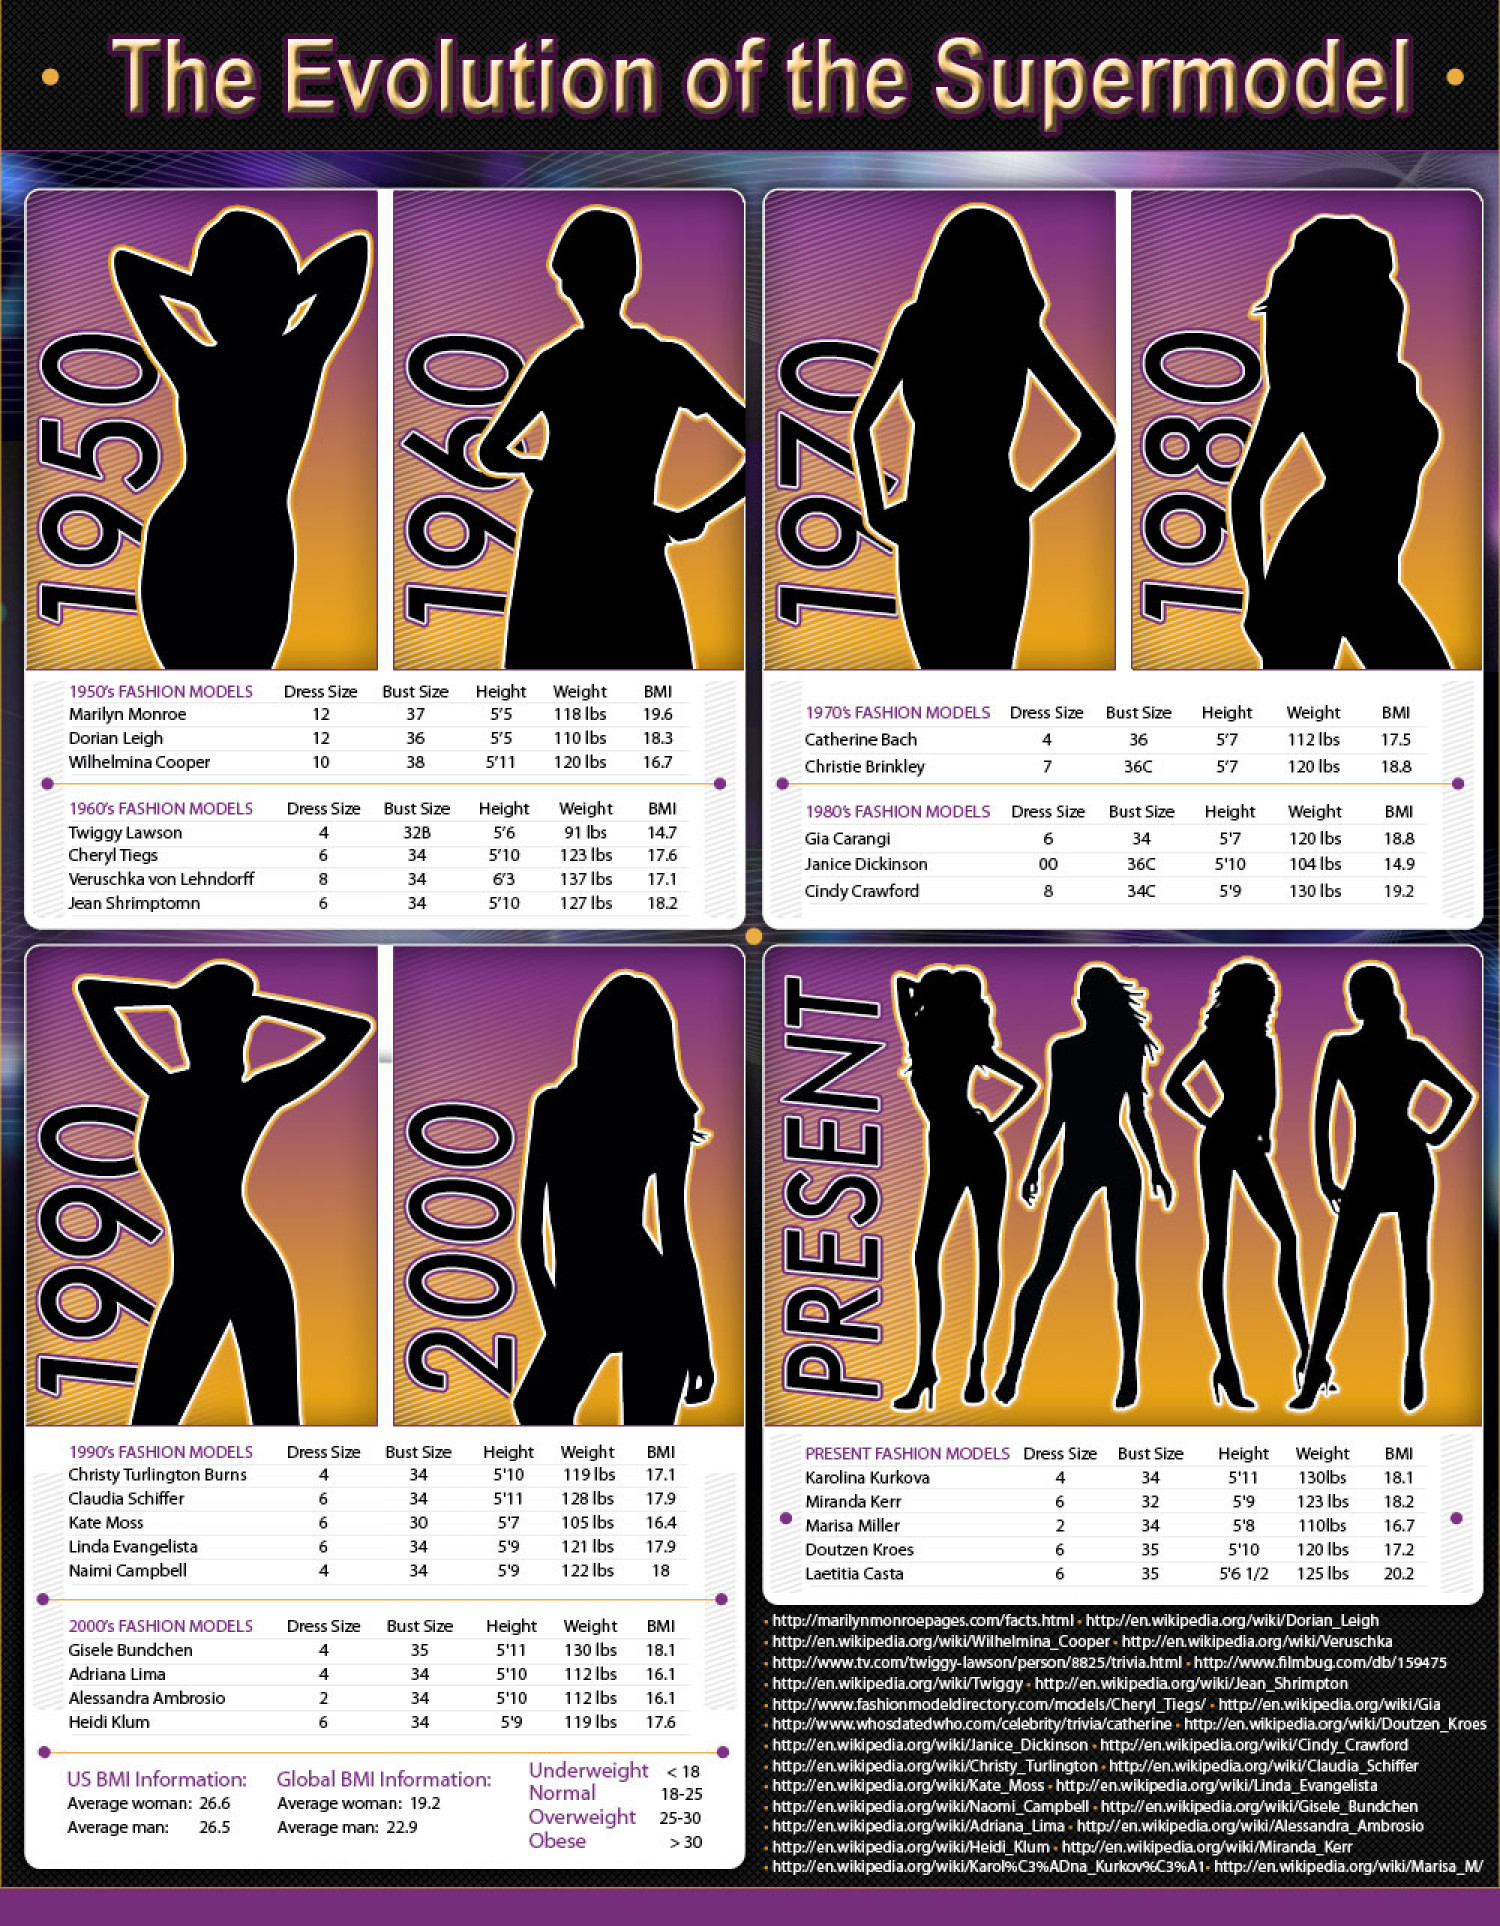 The Evolution of the Supermodel Infographic